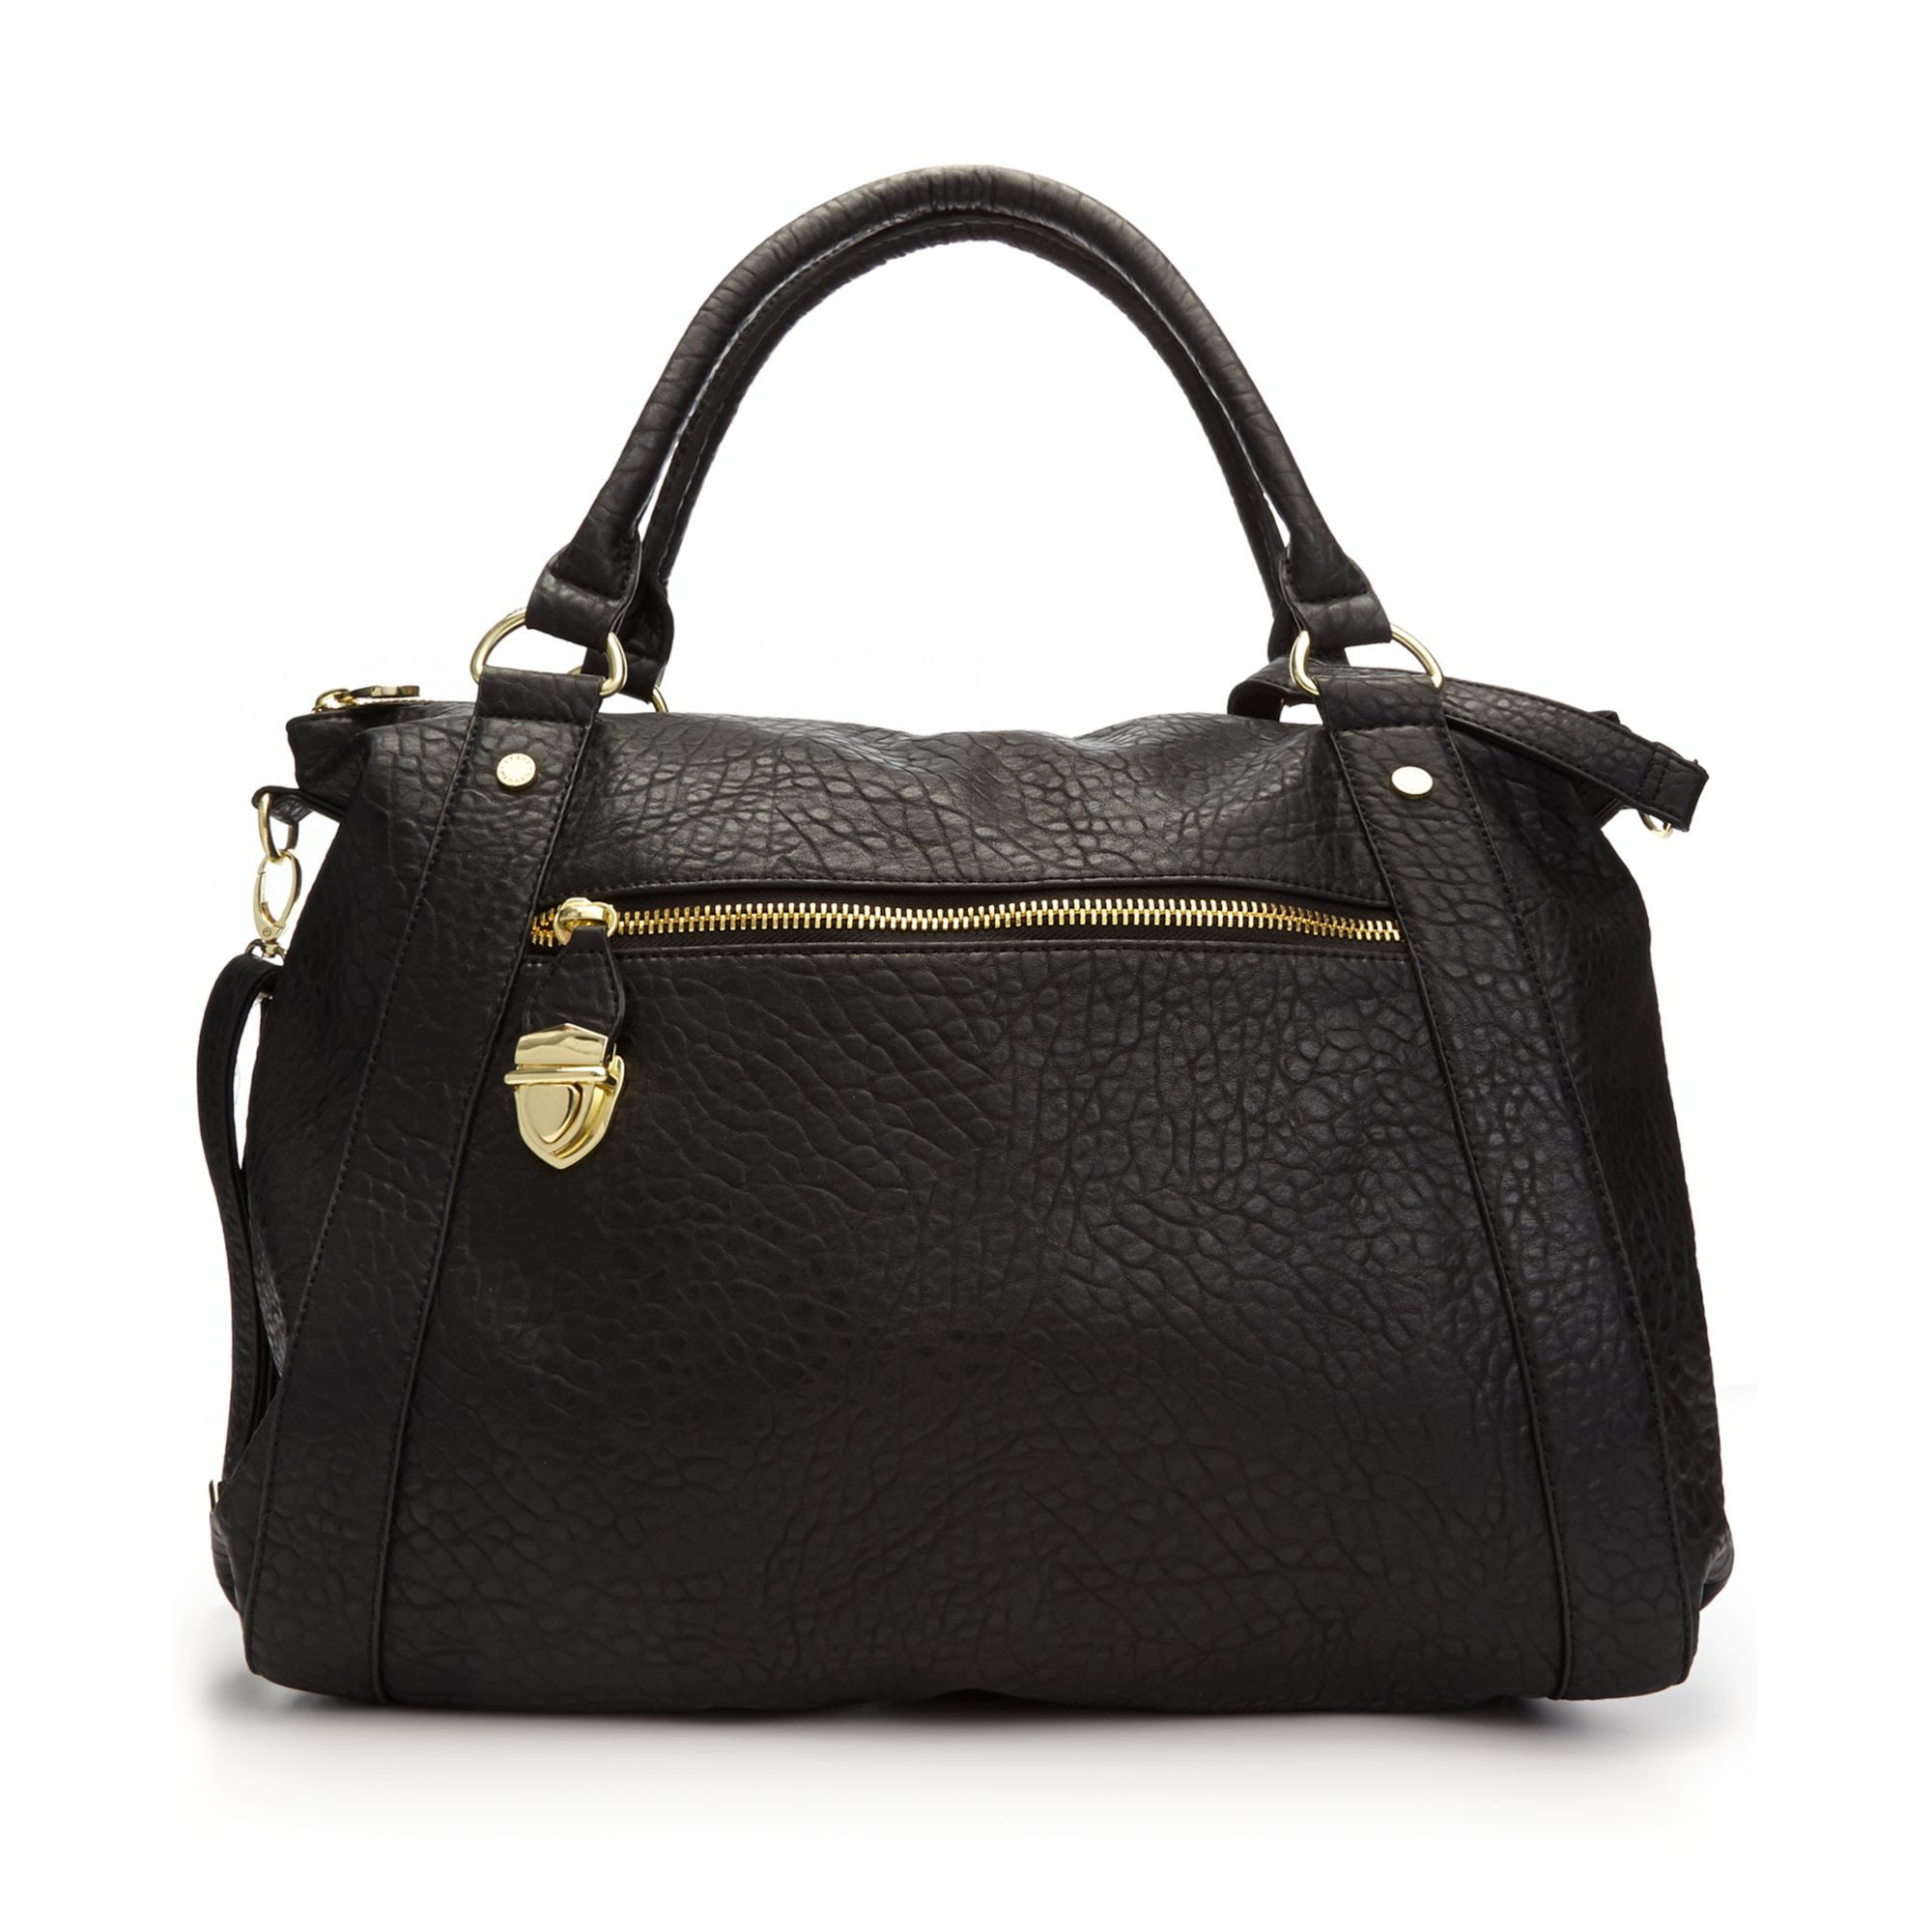 dd62ae84e41b Beautiful Black Handbags